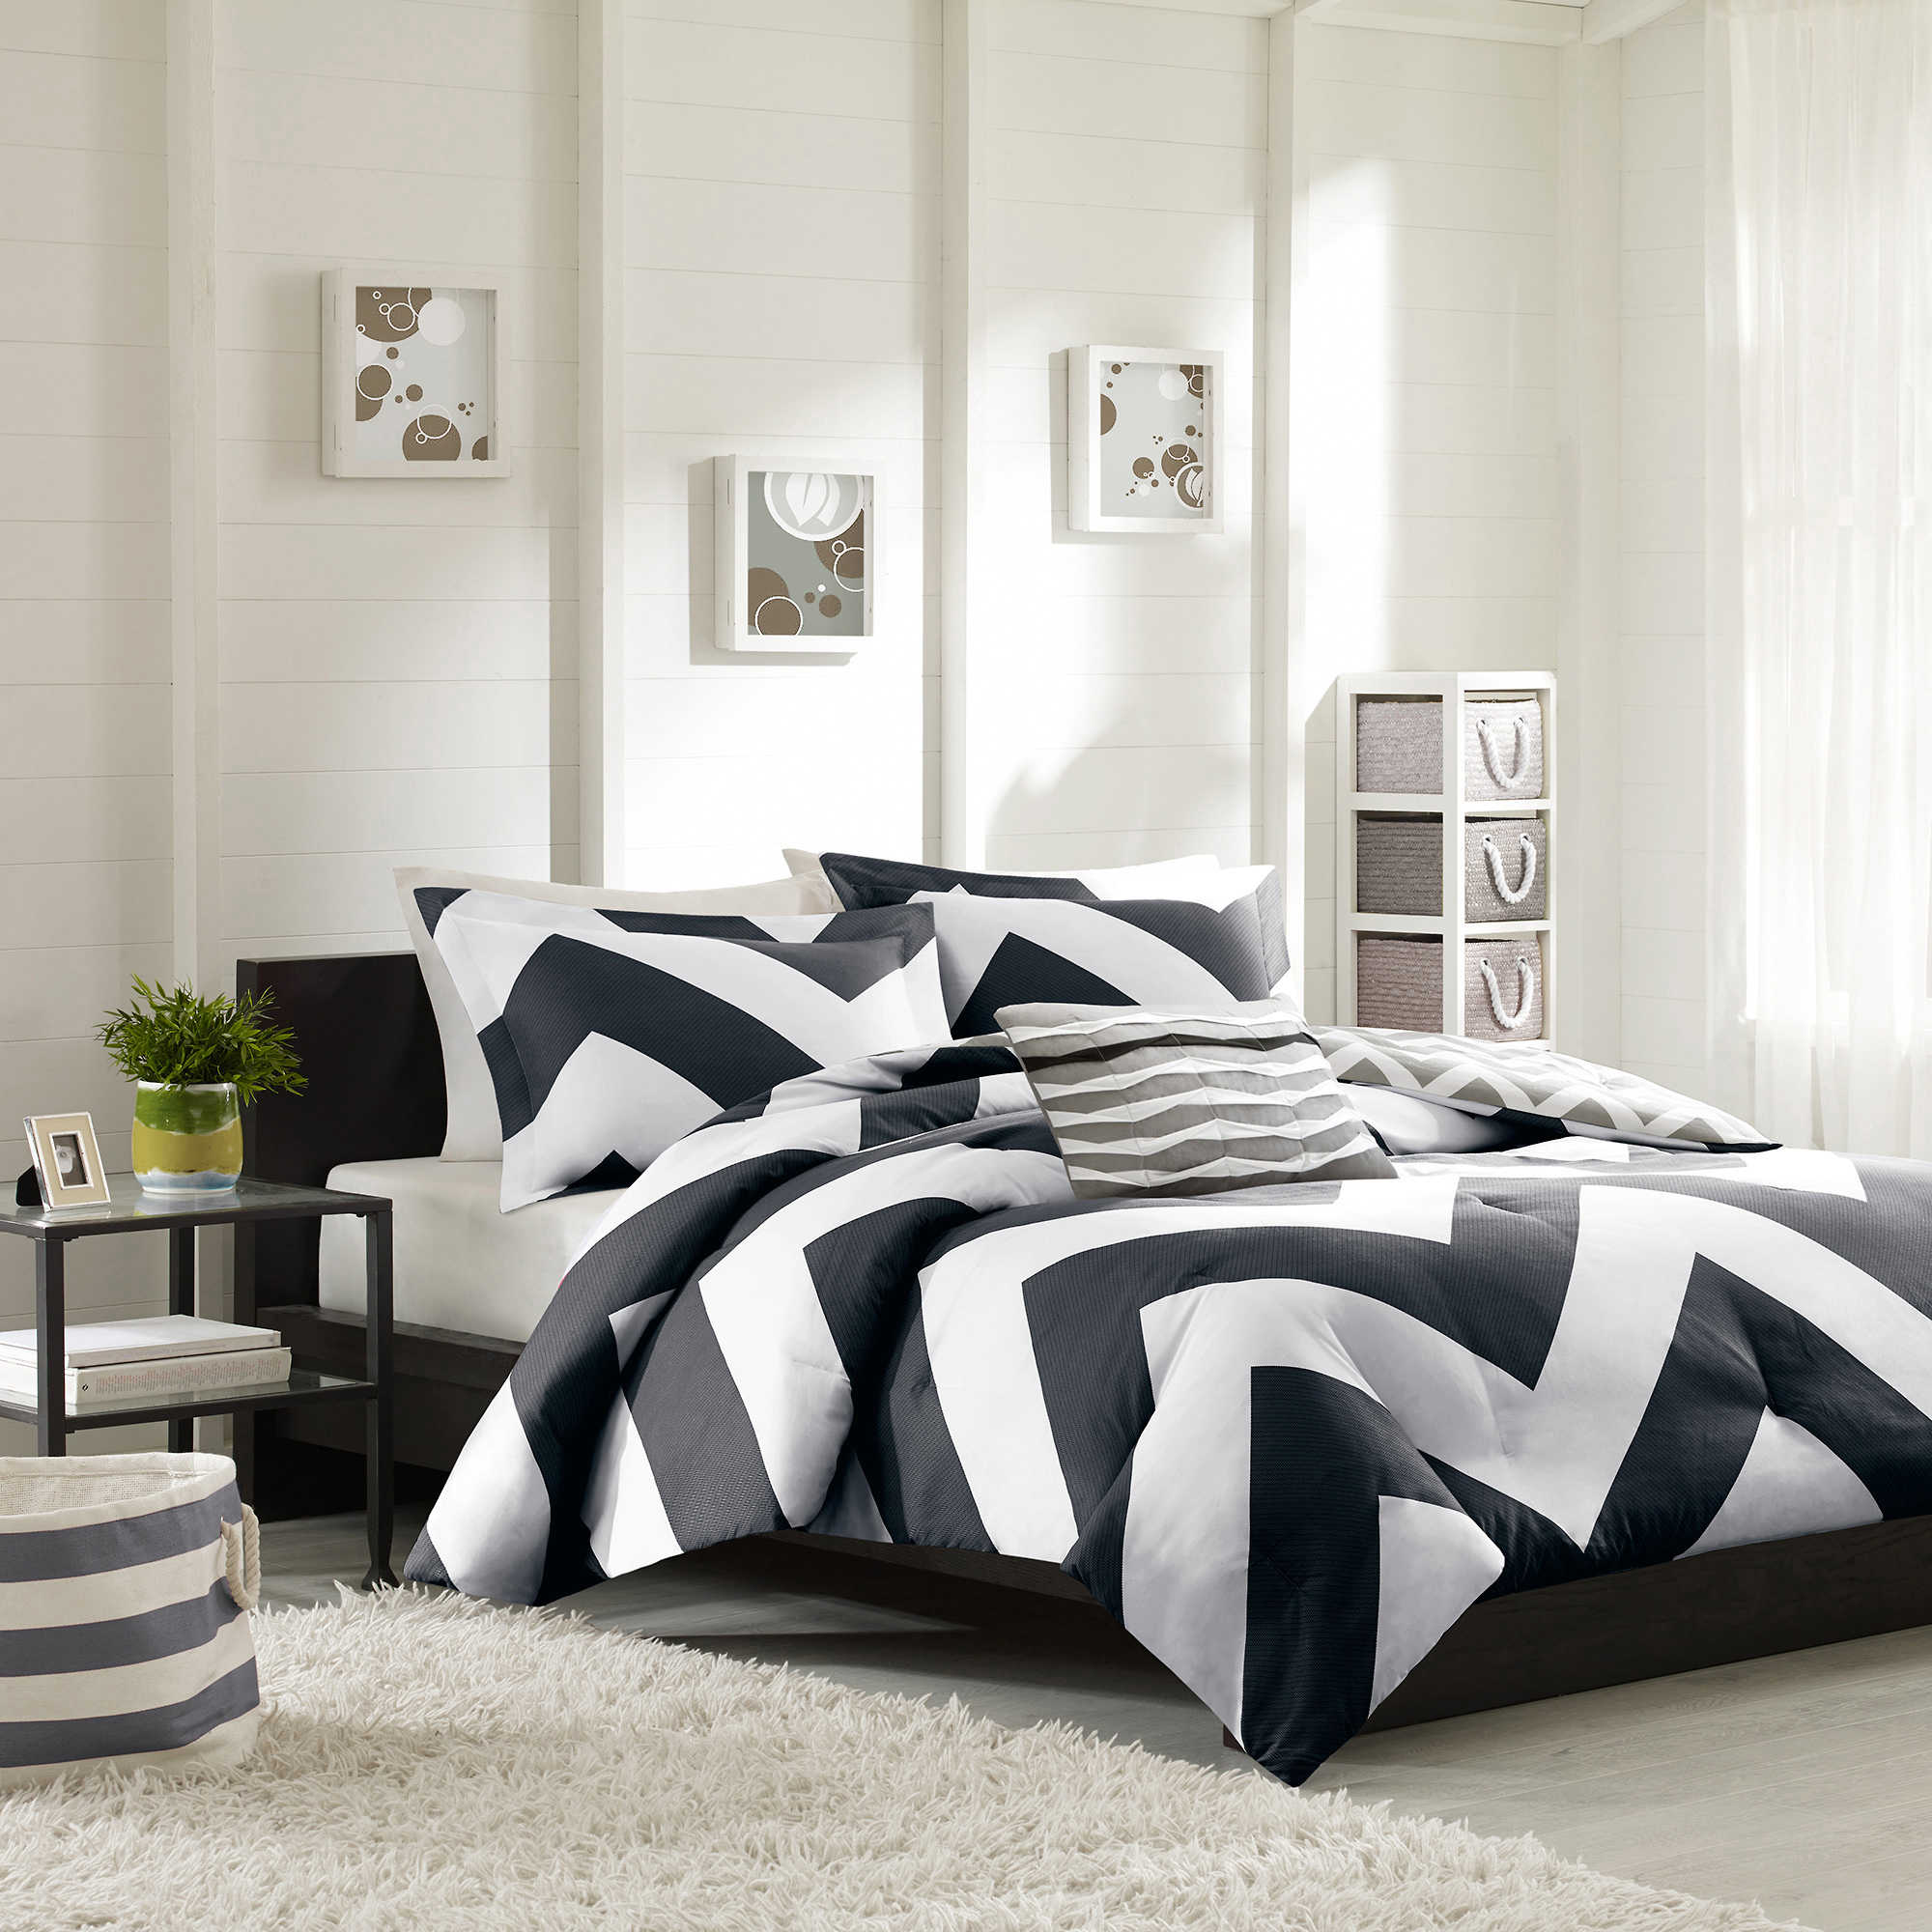 Astonishing Bedroom with black and white comforter sets and laminate porcelain floor also curtain and sidetables